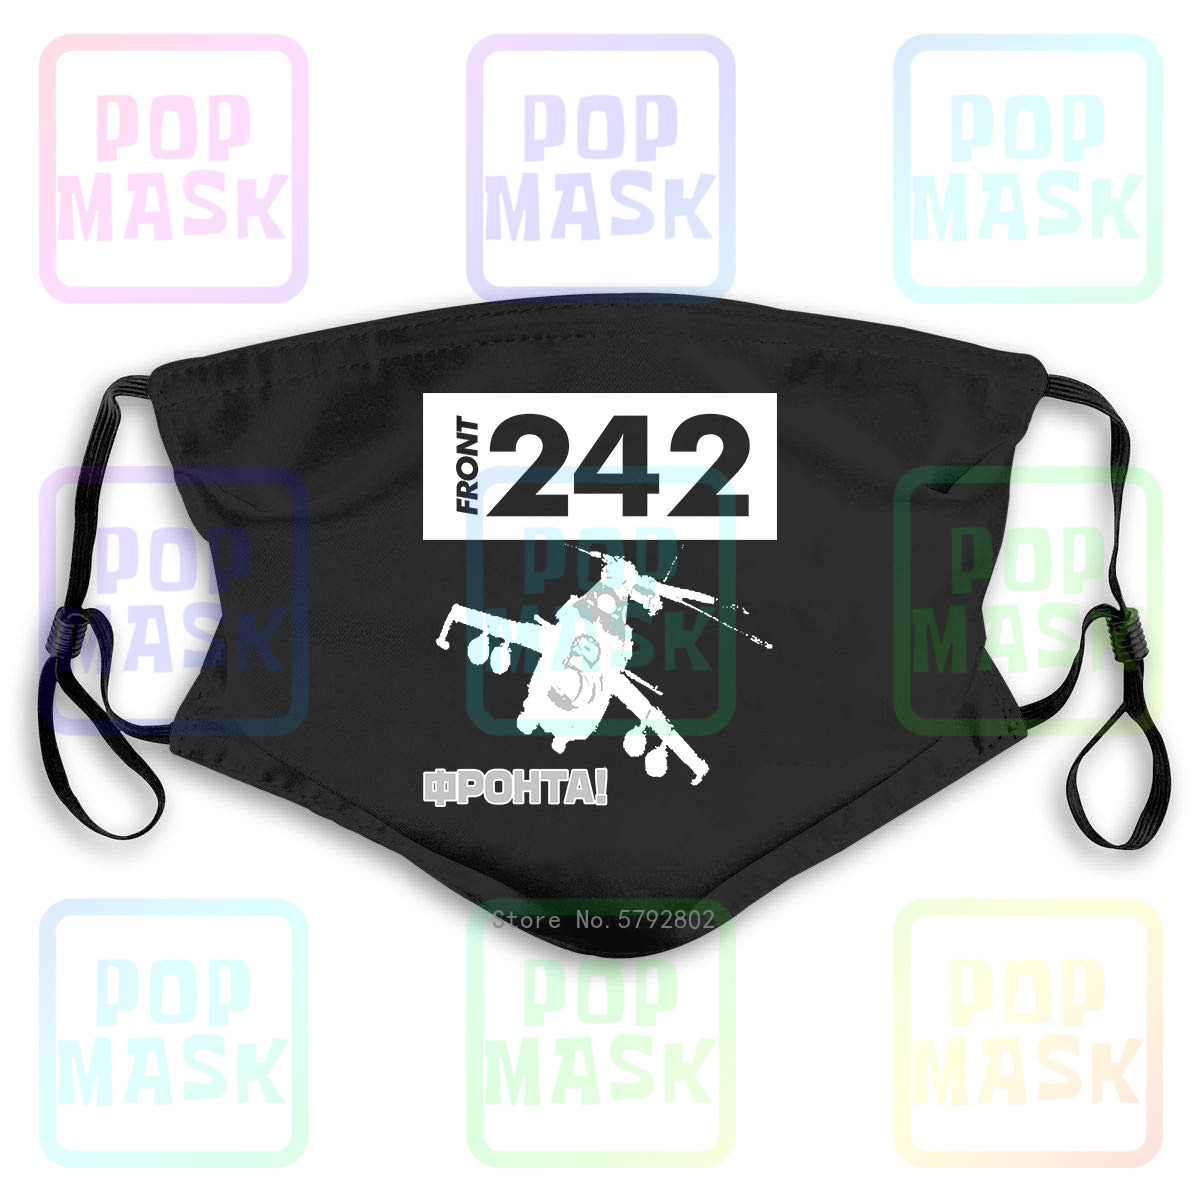 Dust Mask With Filter Front 242 Größe Fronta! Hubschrauber Helicopter Ebm Fla Vac Covenant Washable Reusable Mask